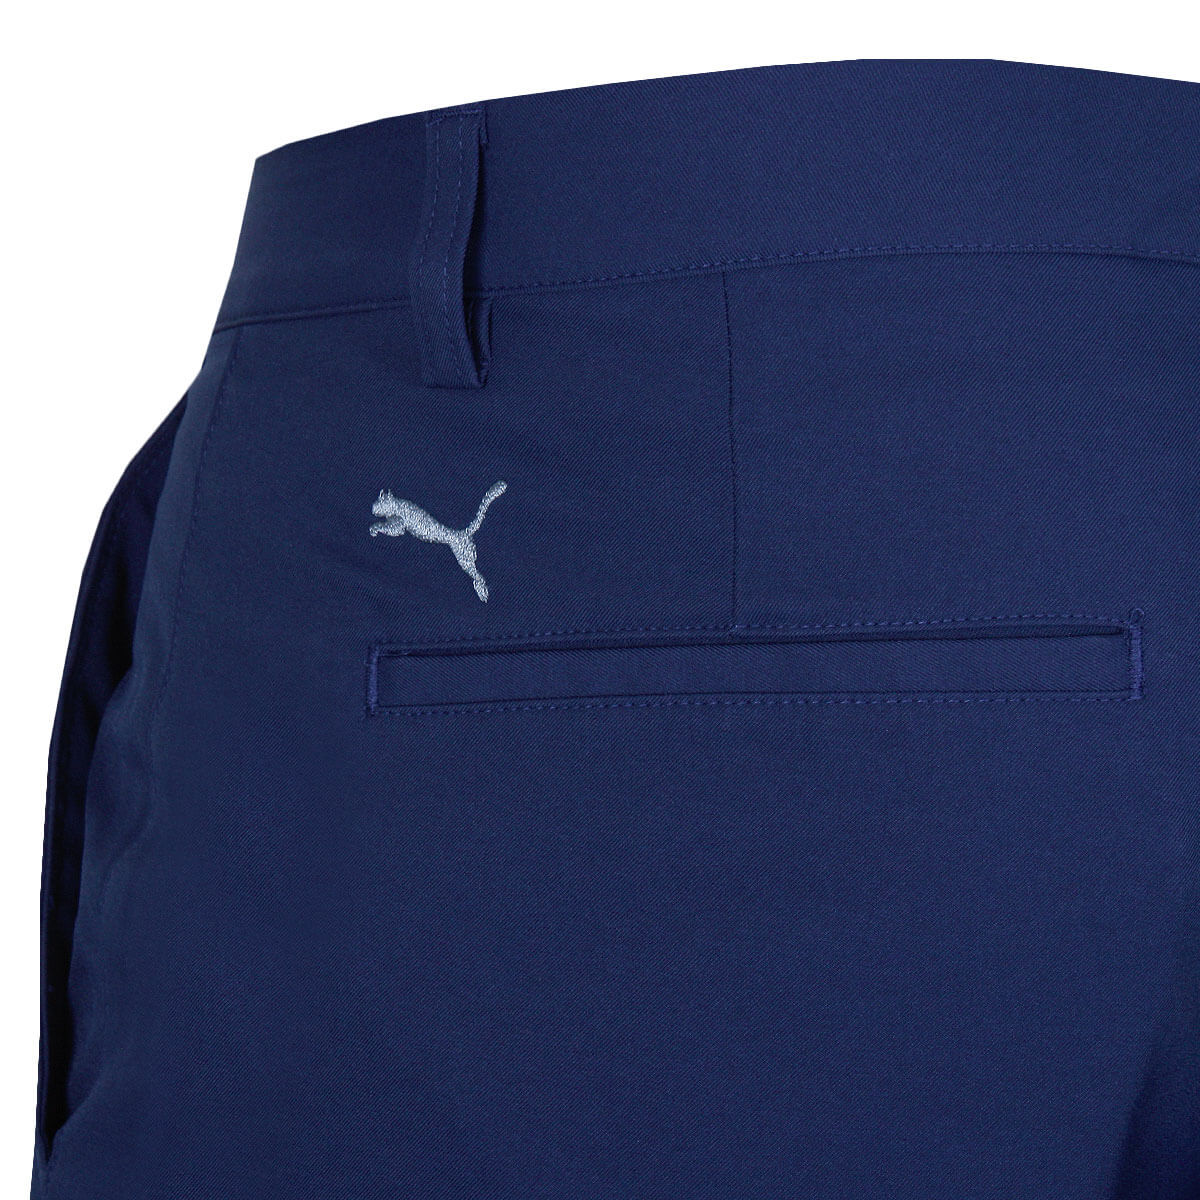 Puma-Golf-Mens-Stretch-Pounce-Golf-Stretch-Wicking-Trousers-45-OFF-RRP thumbnail 7